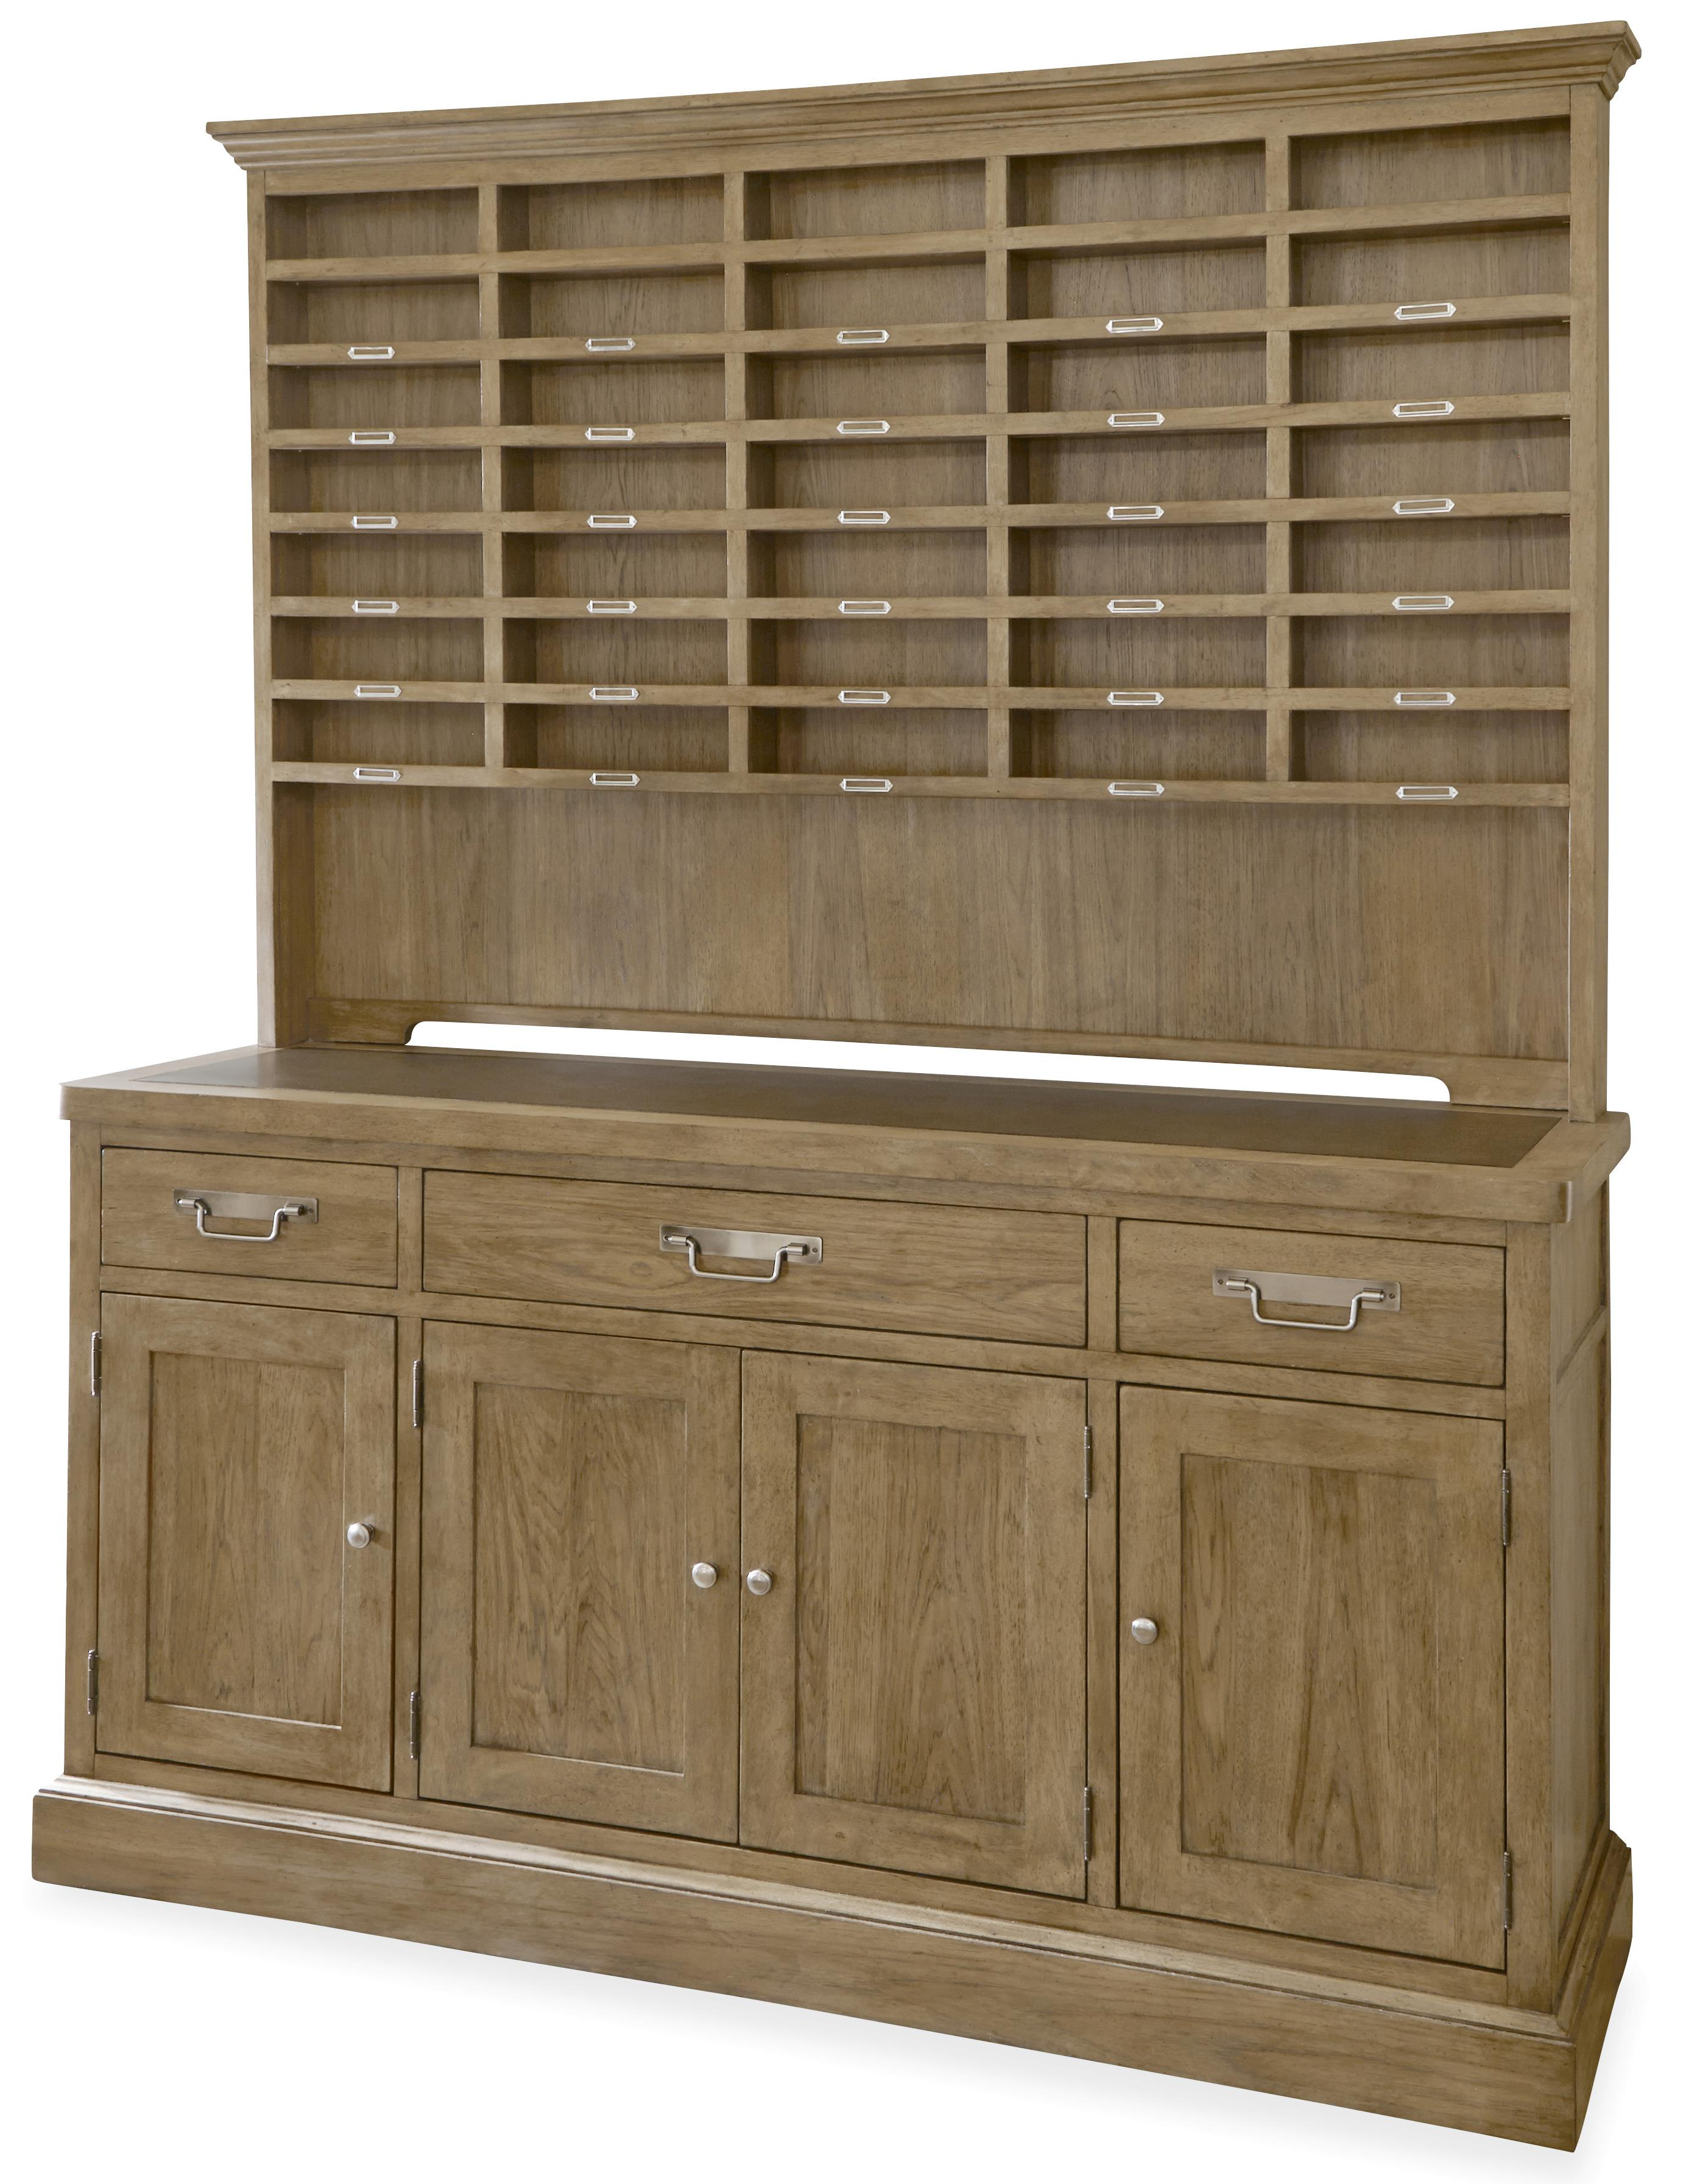 Universal Moderne Muse Sideboard with Hutch - Item Number: 414679HC